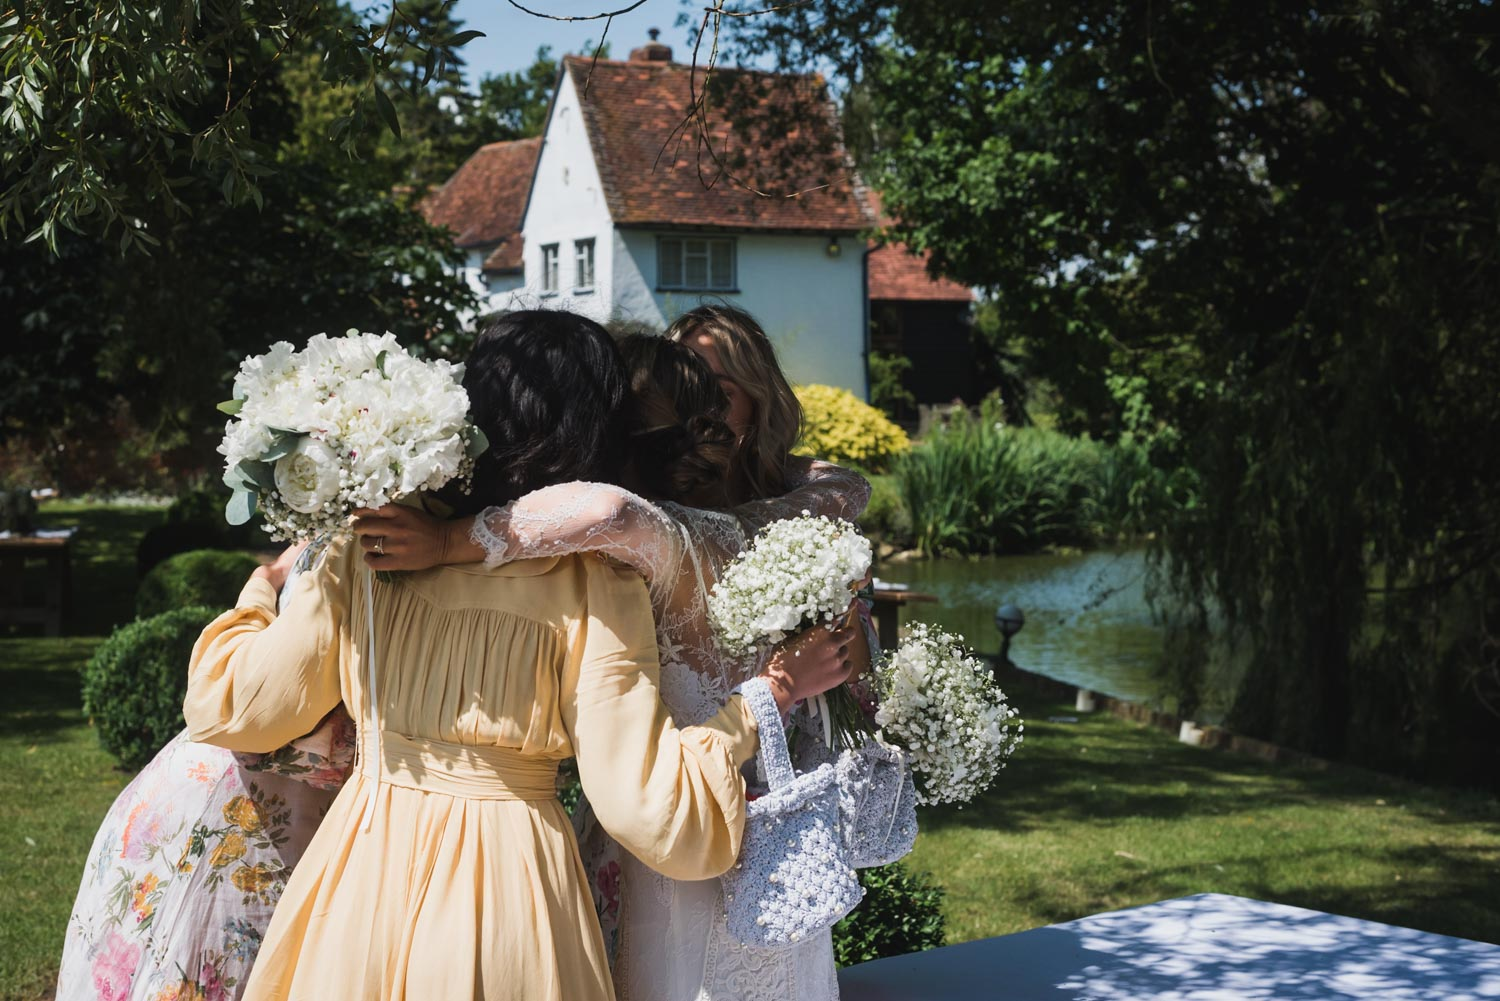 wedding hugs at garden, Carine Bea Photography